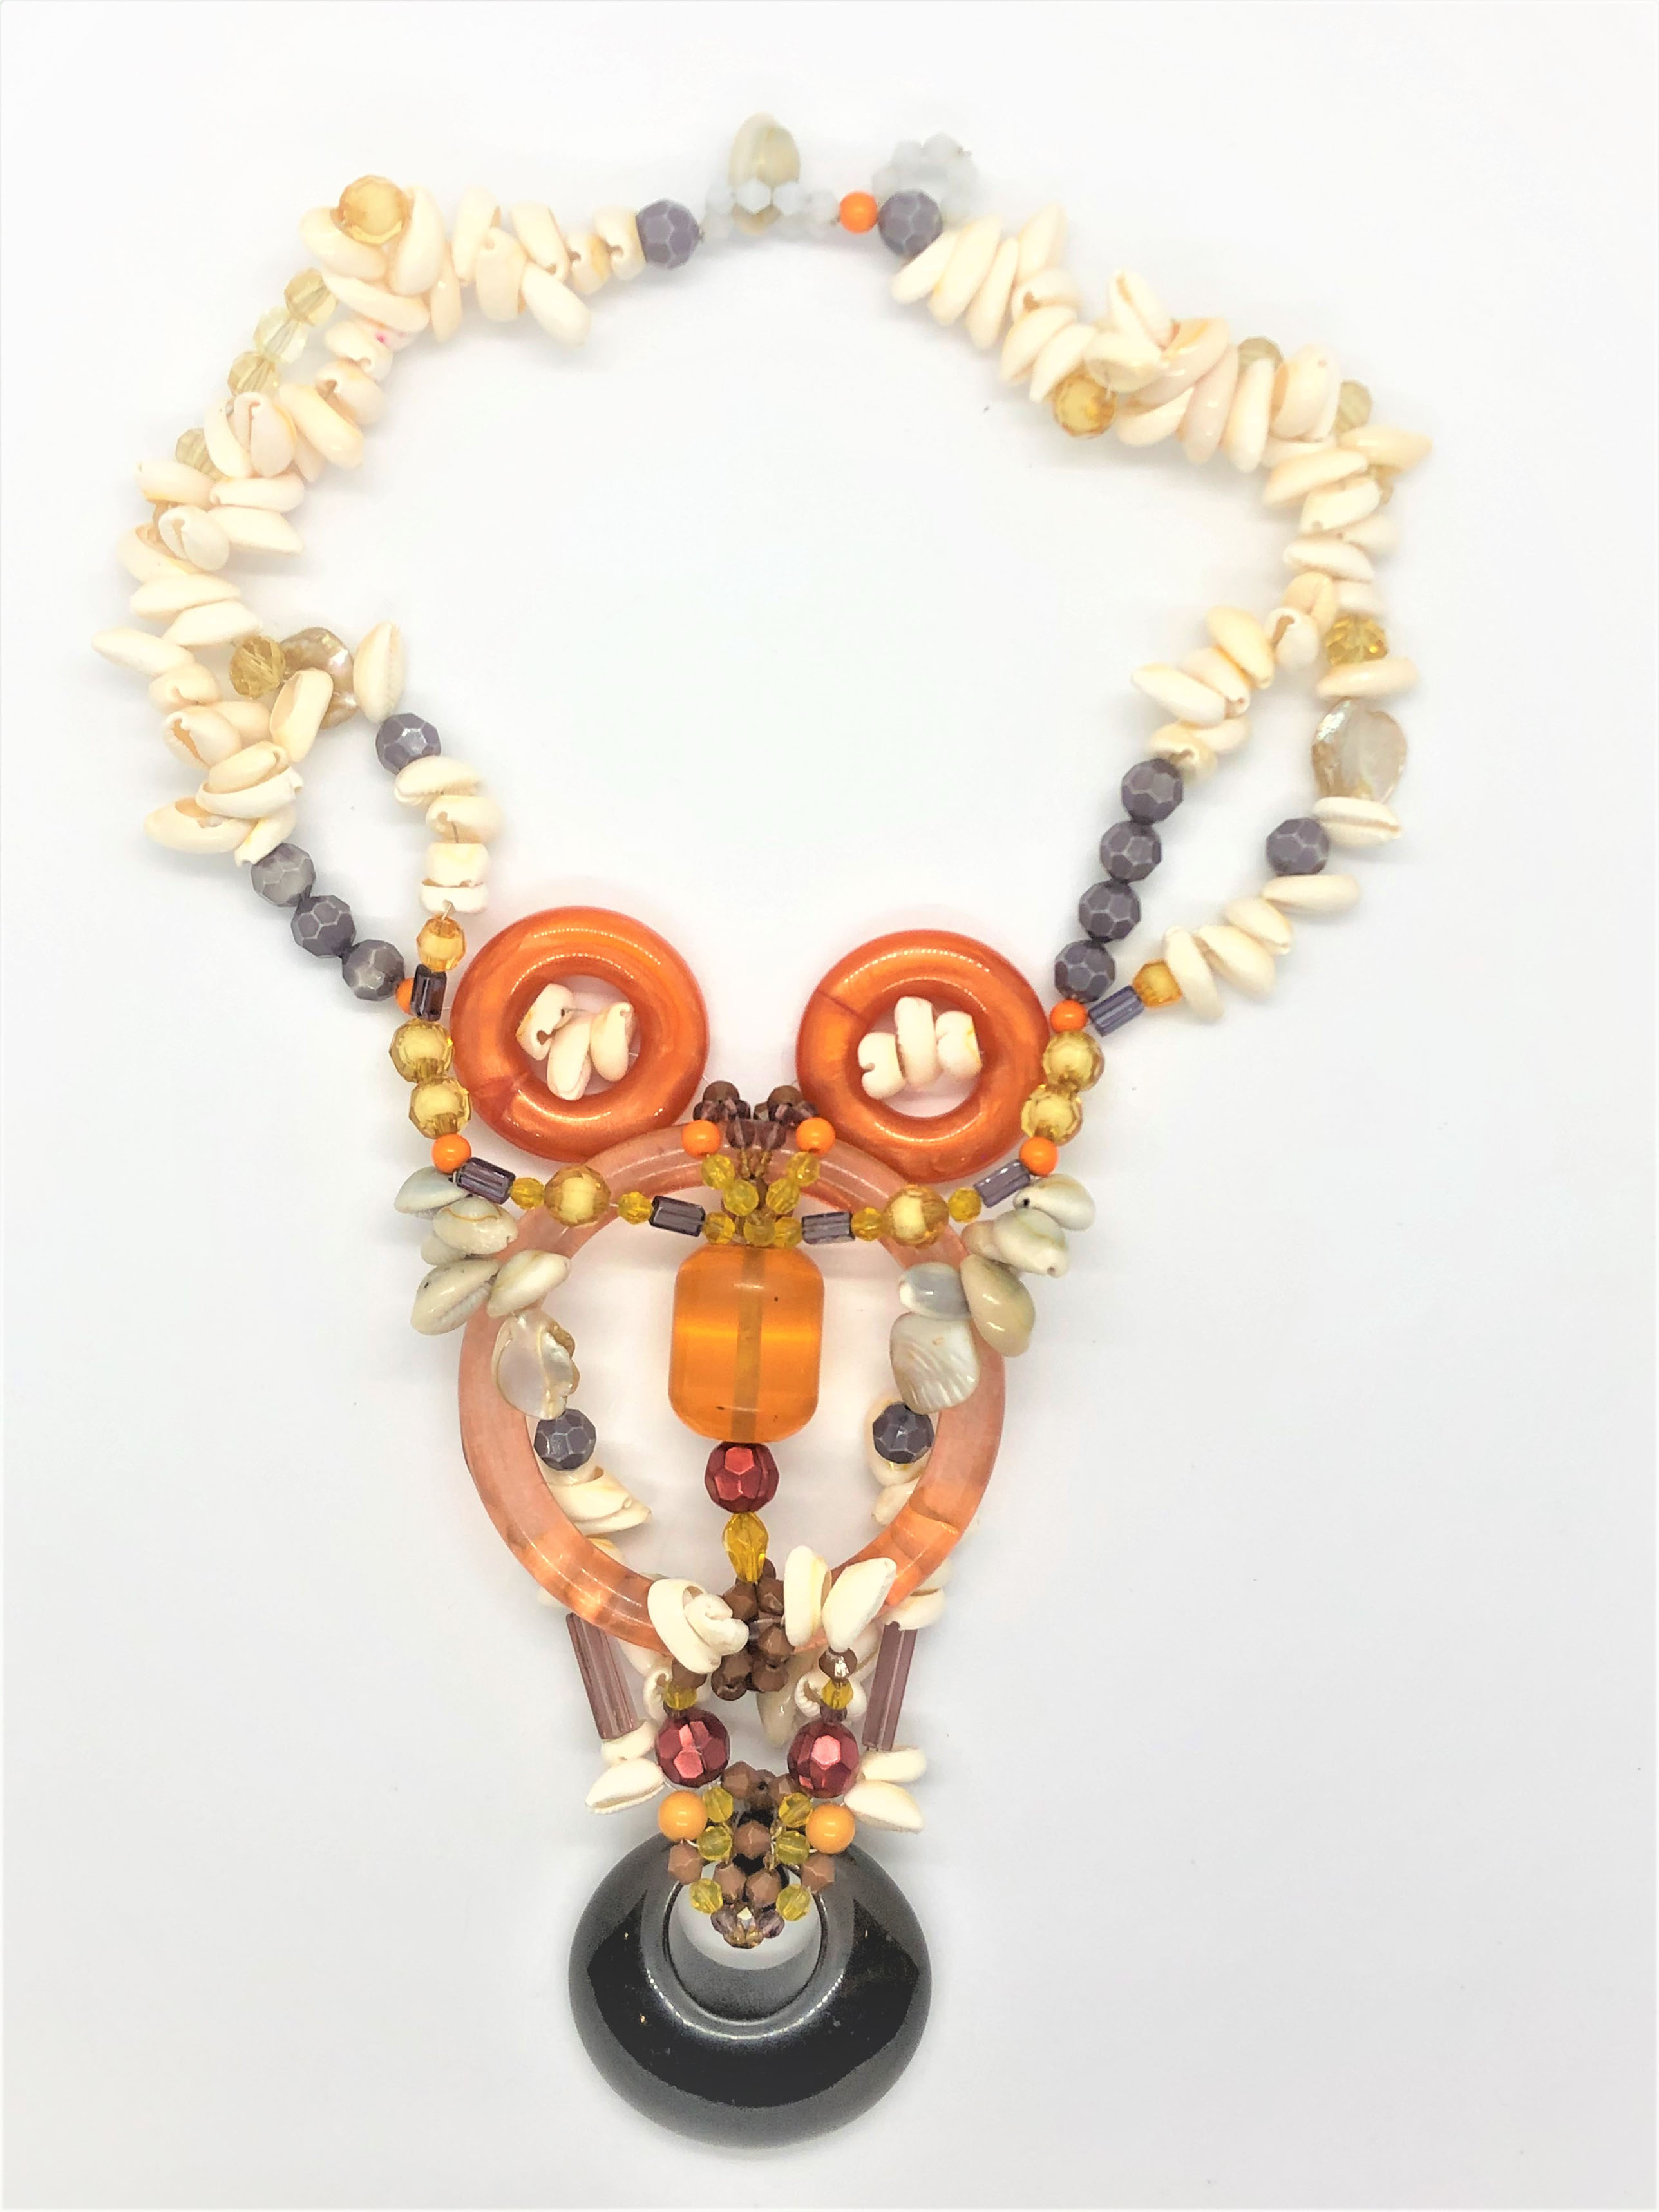 The Wedlock Necklace